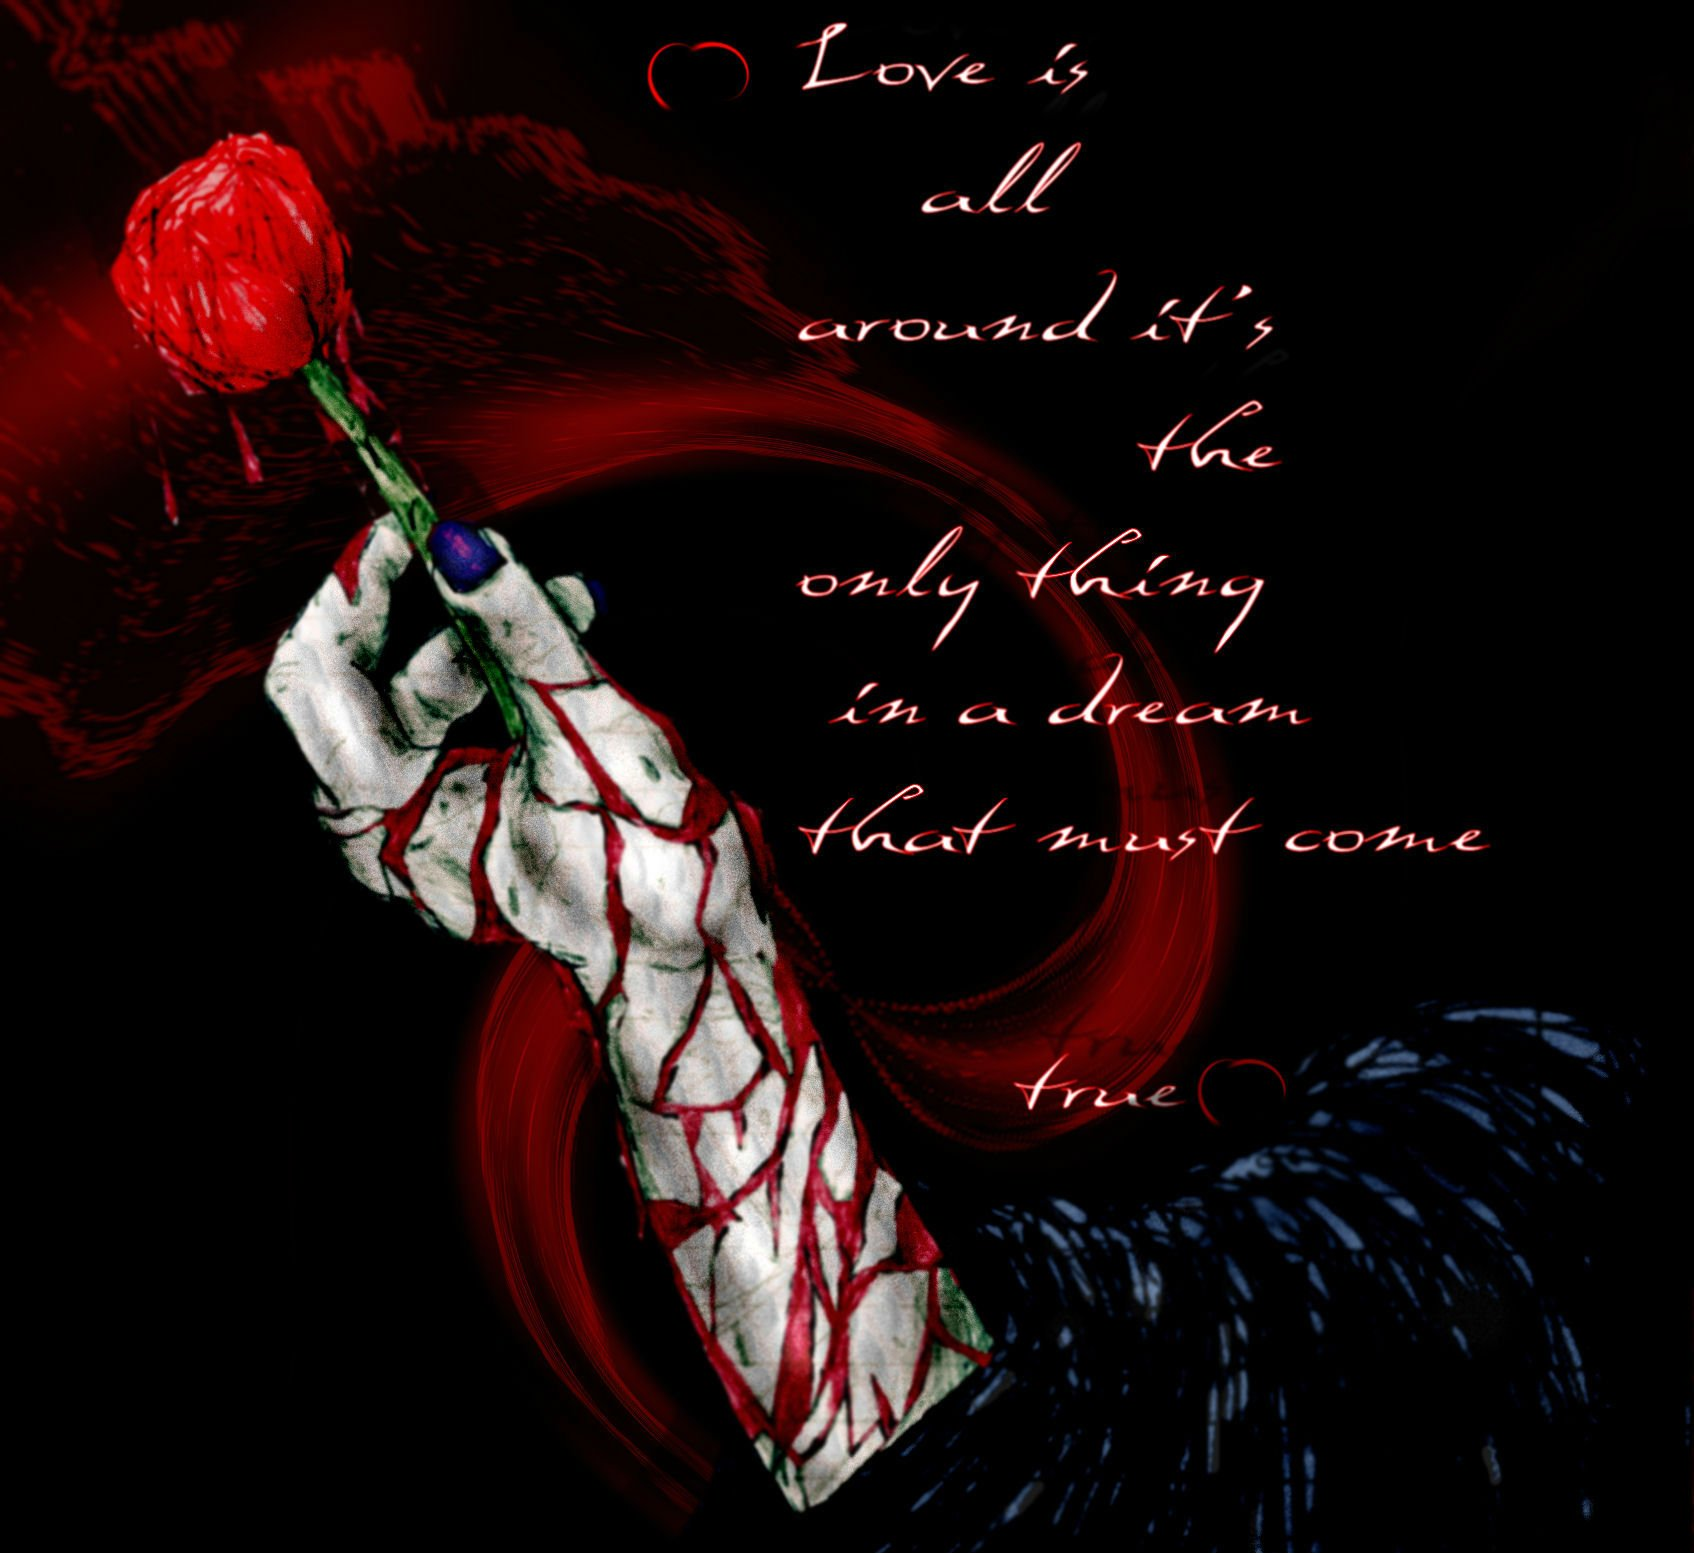 Love Sad Blood Wallpaper : Love mood gothic rose blood emo dark wallpaper 1694x1553 329826 WallpaperUP